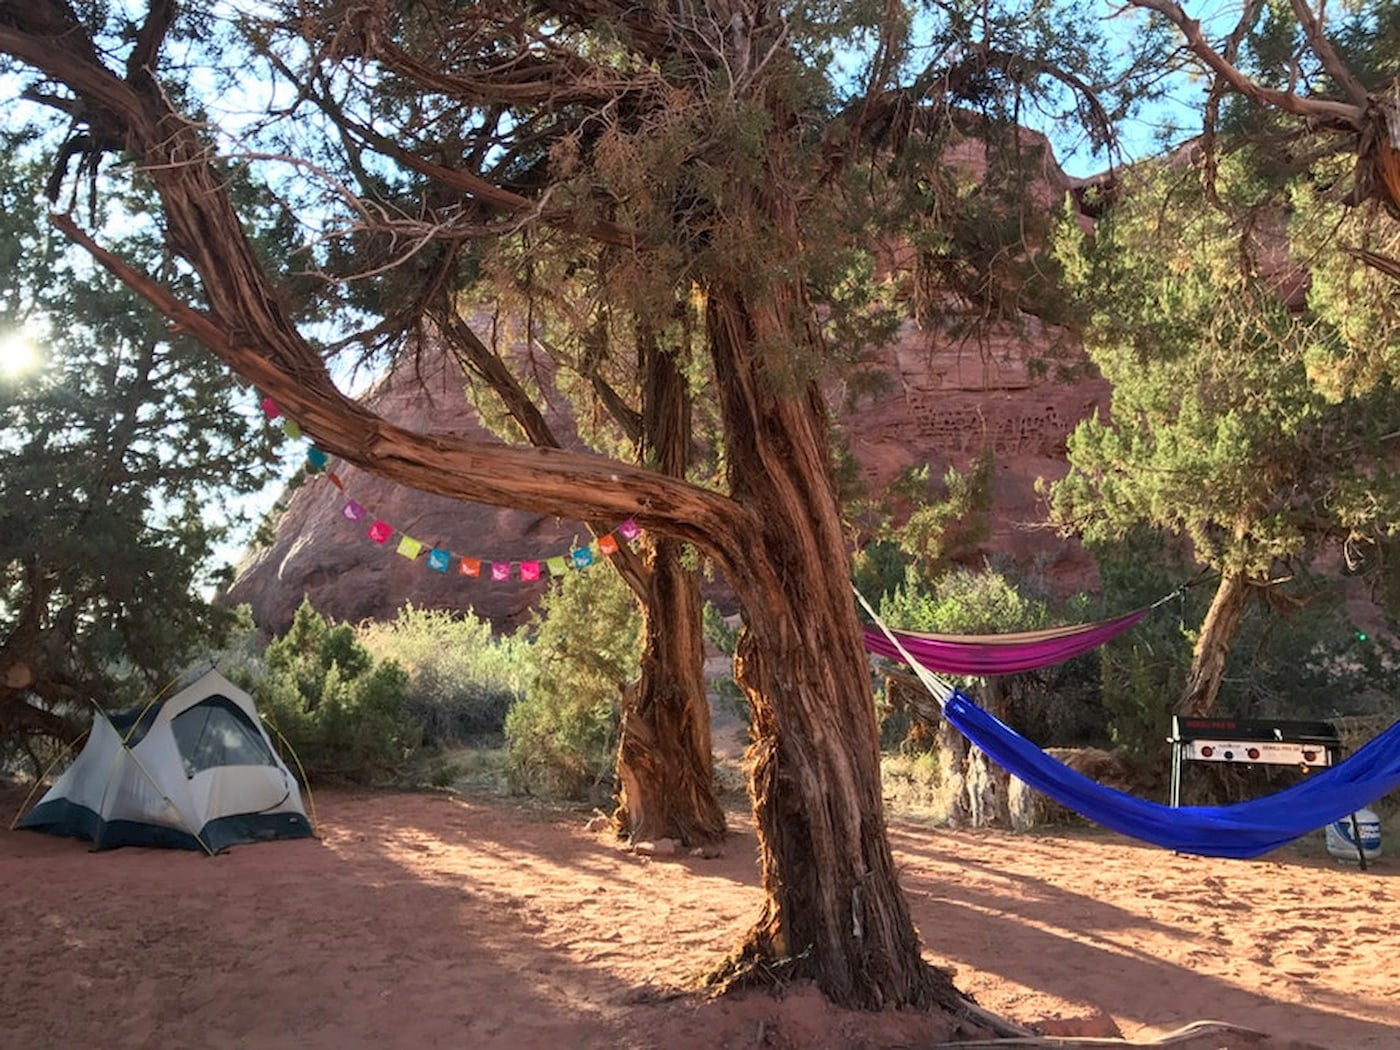 Tent, colorful hammocks and flags set up under a tree below a canyon.